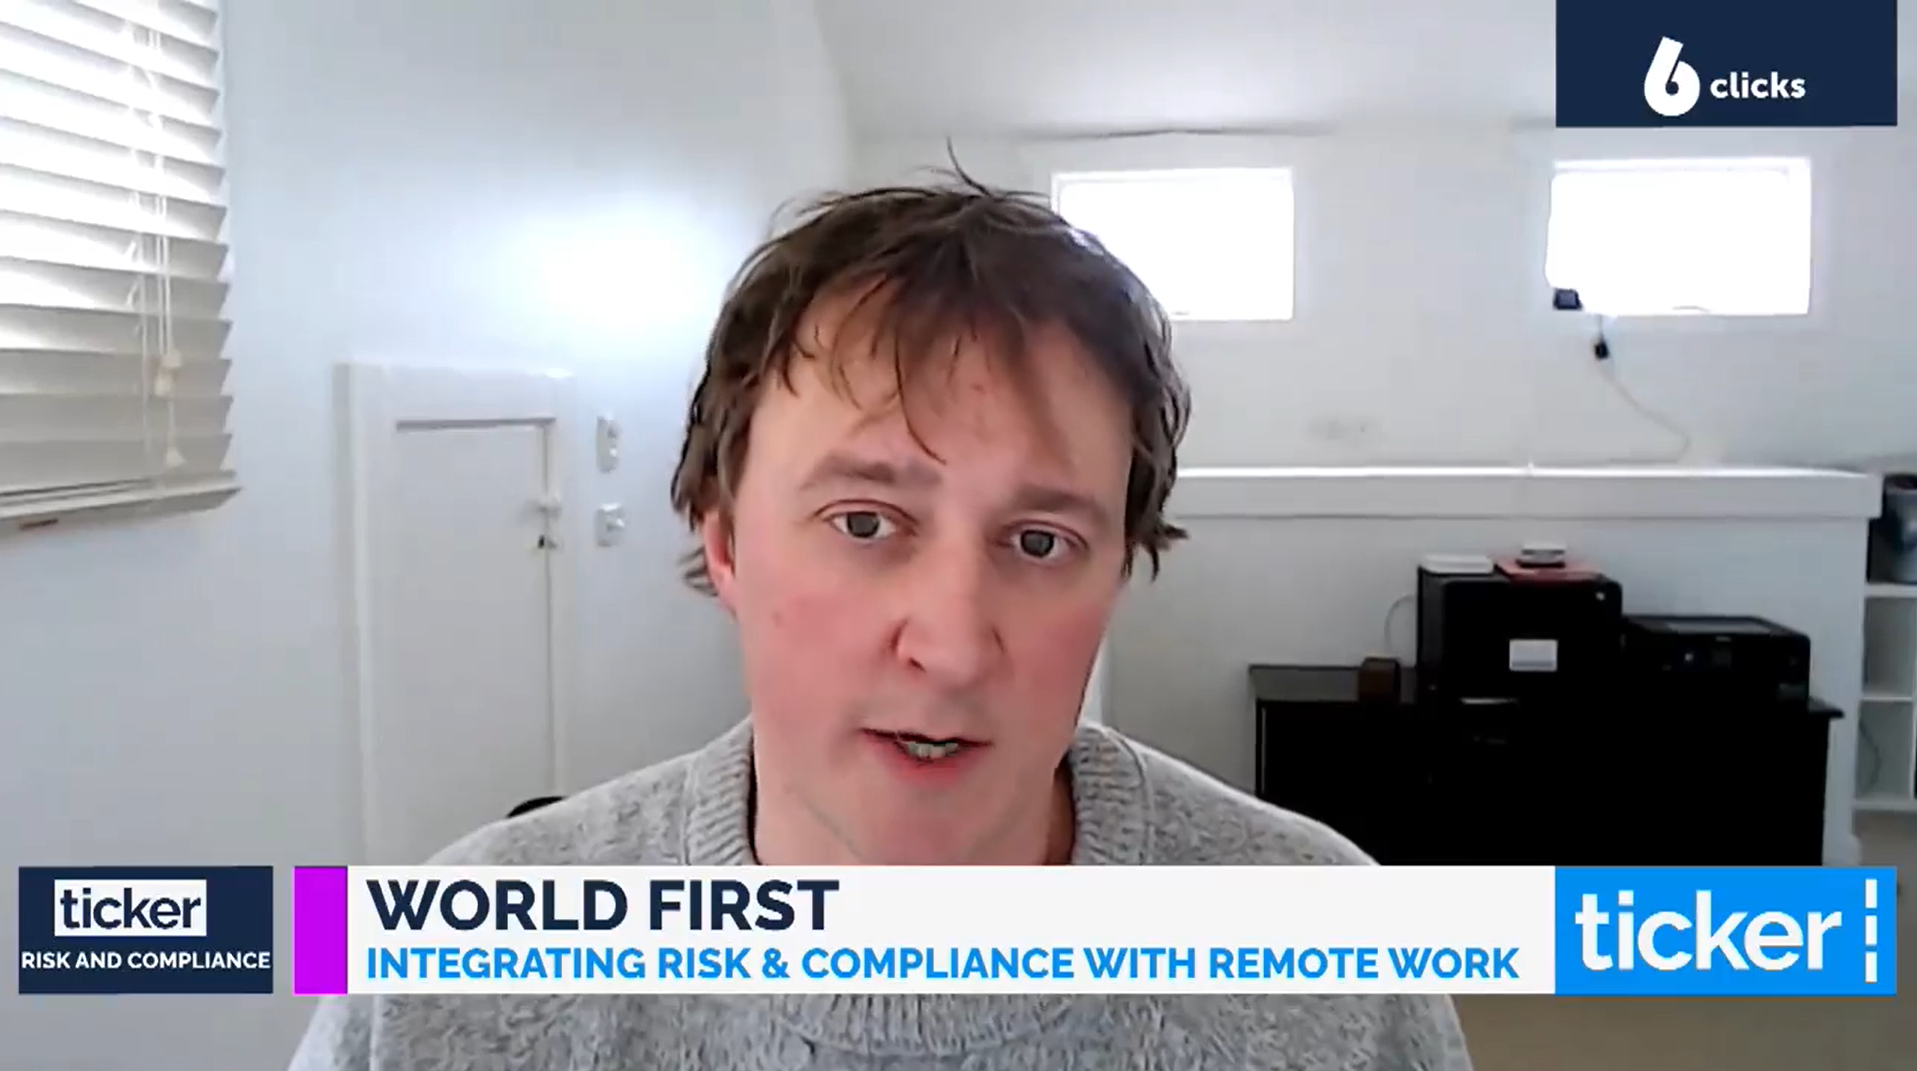 It's about time risk and compliance practitioners become excited about the software they use